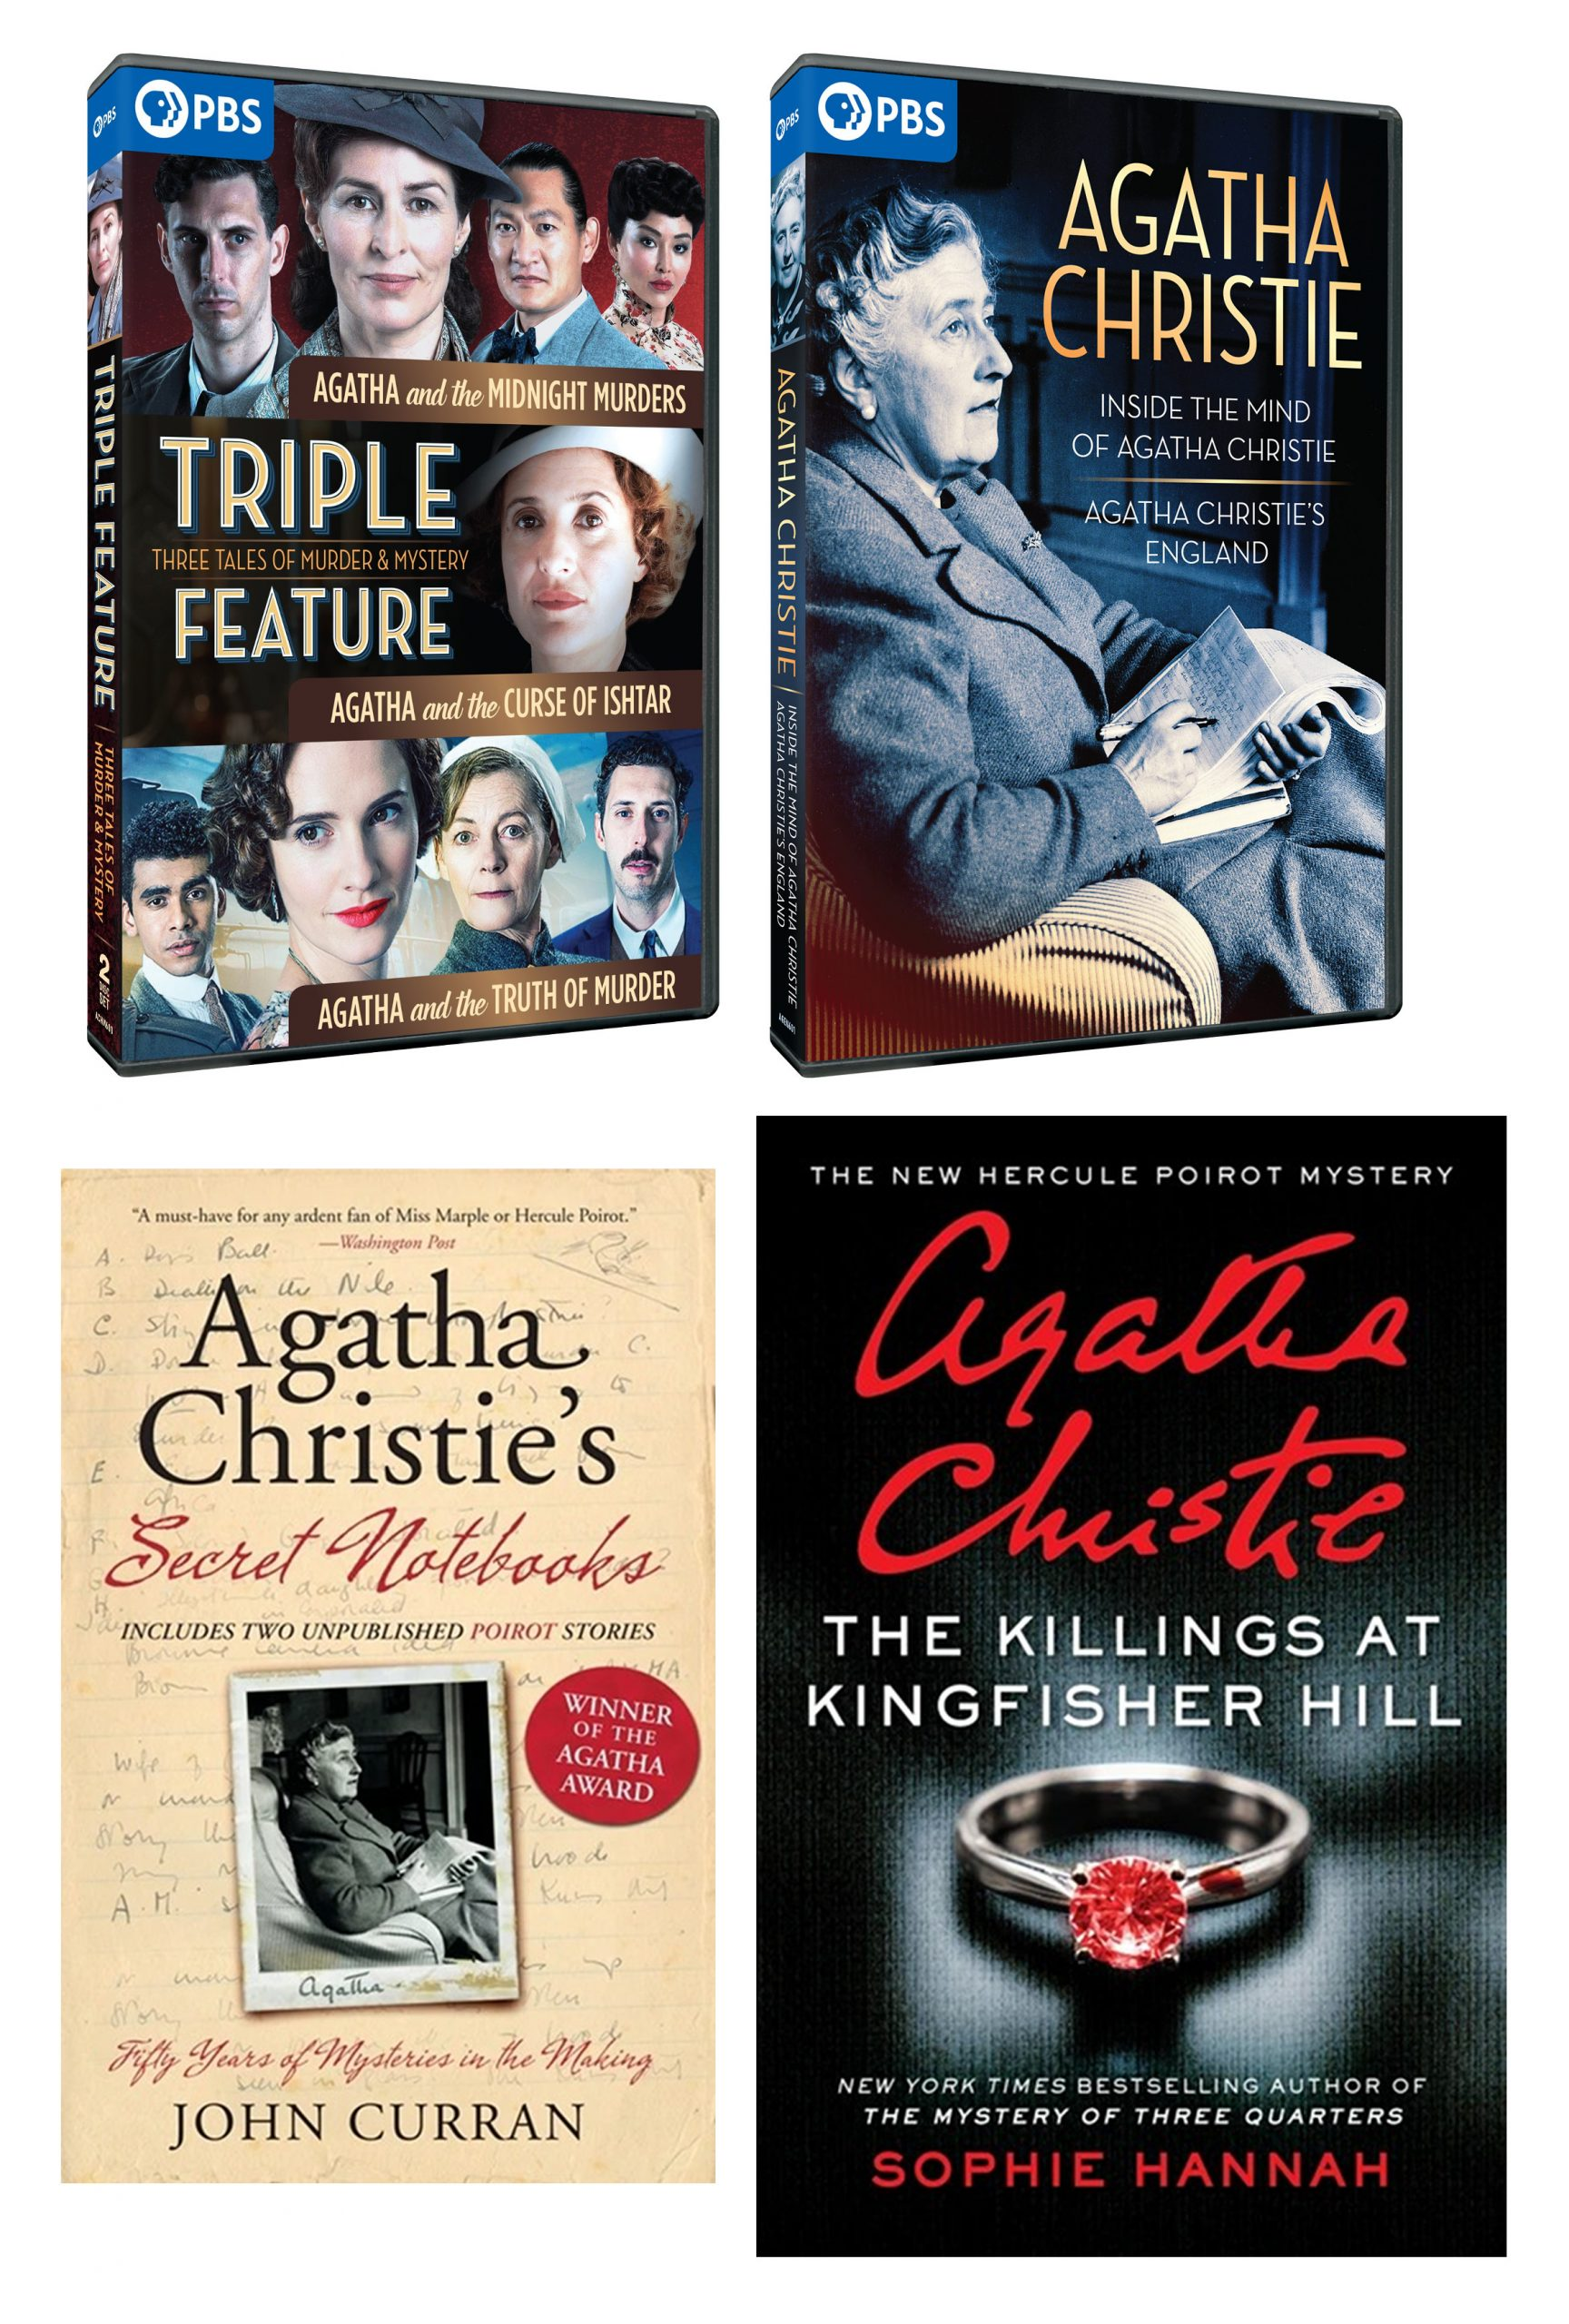 Agatha Christie/Curse Of Ishtar Combo: 3 DVDS + 2 Paperback Books